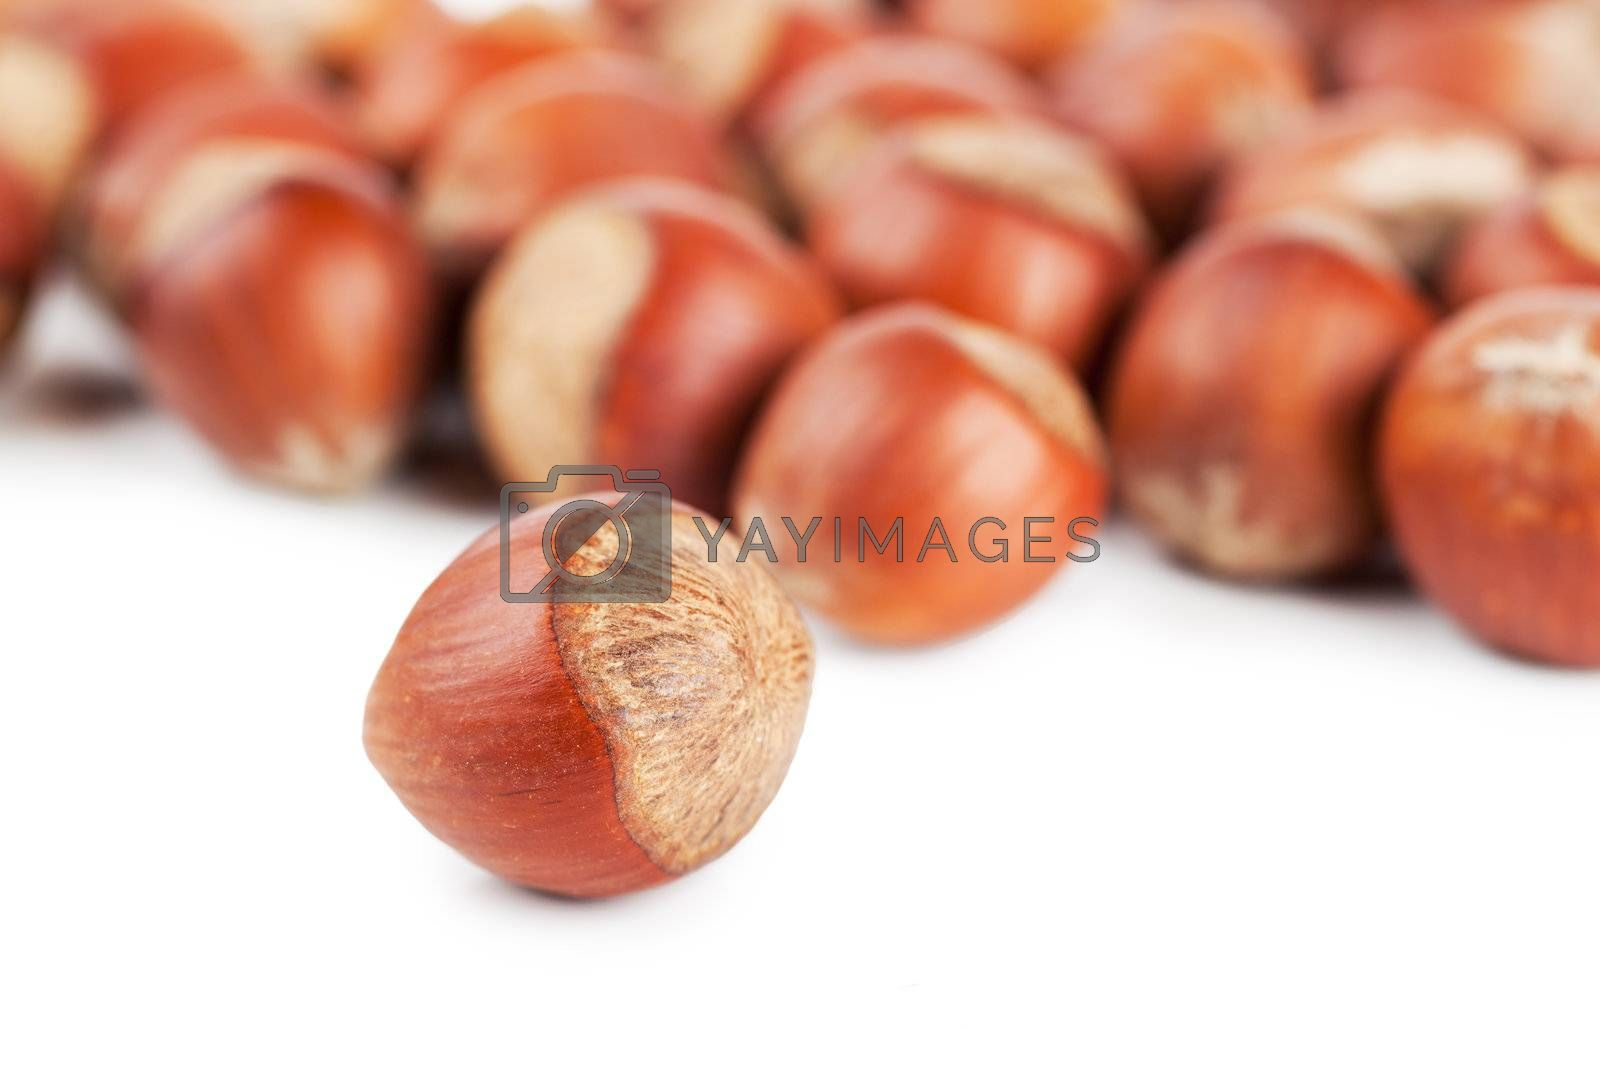 Royalty free image of Hazelnuts by AGorohov